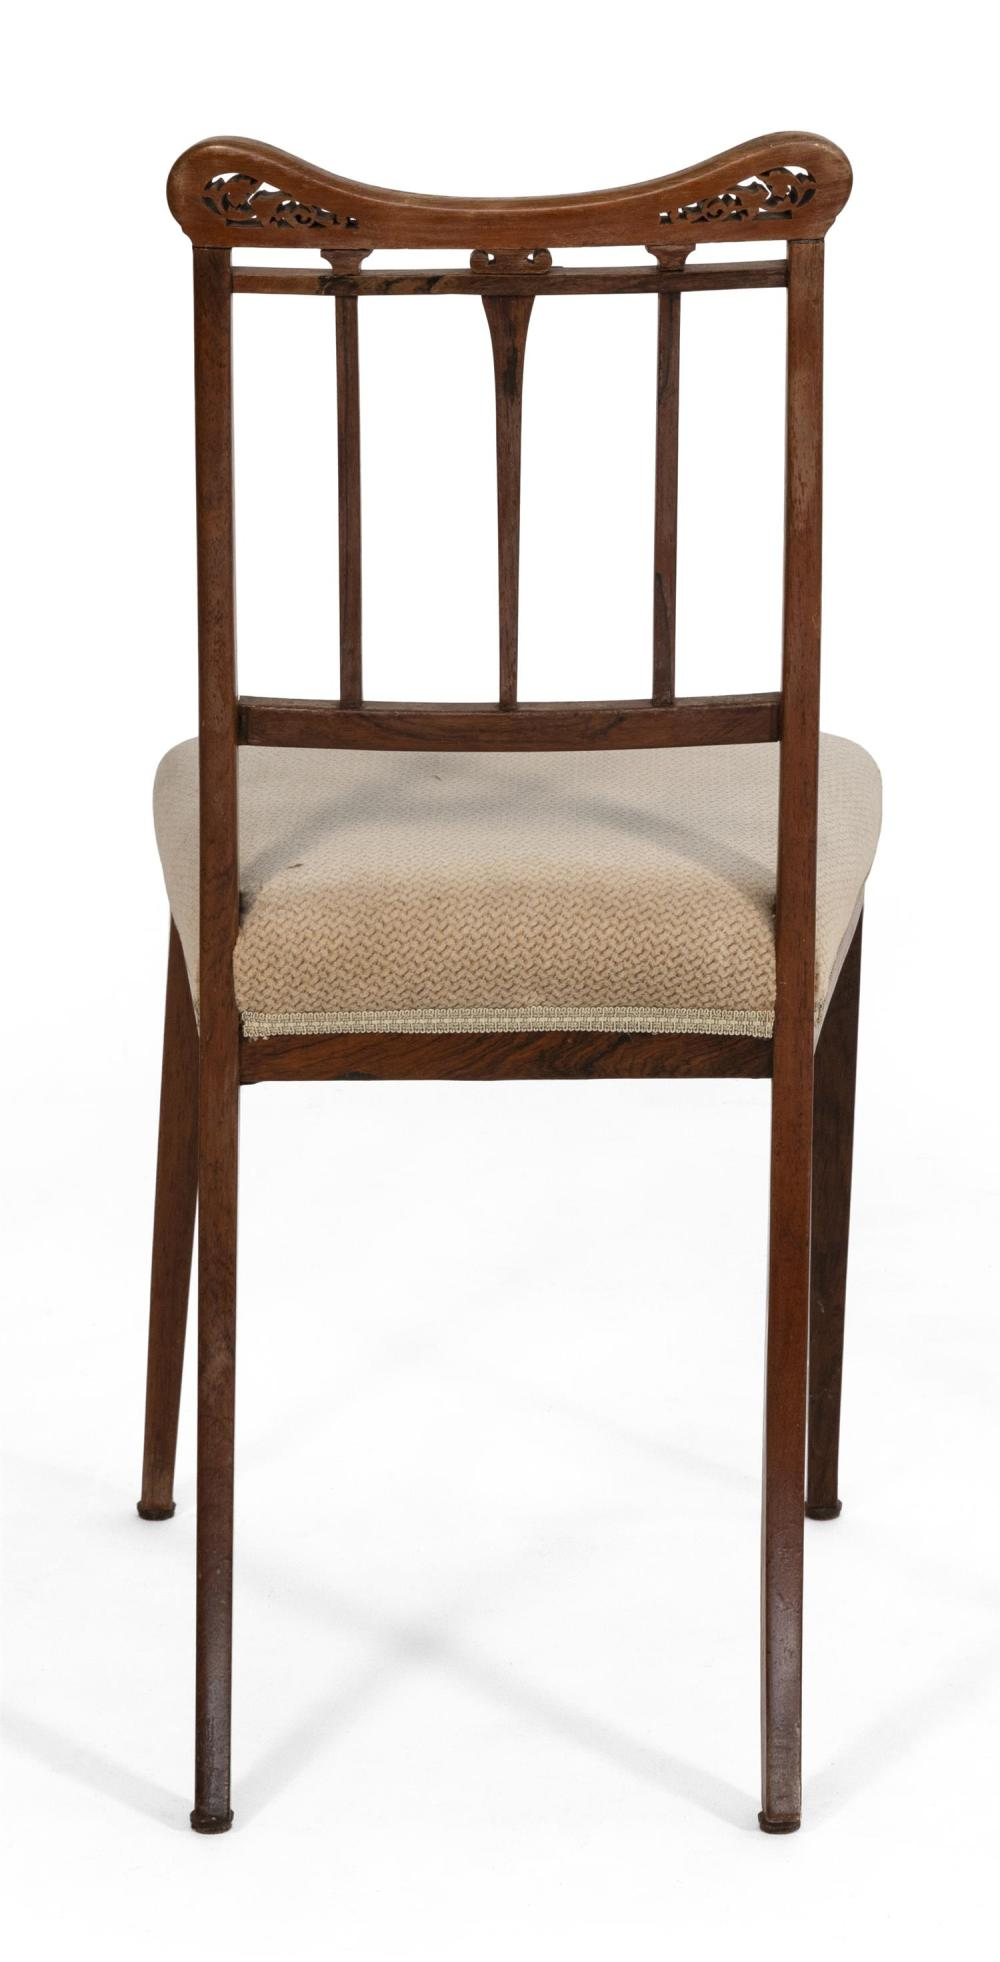 DIMINUTIVE FRENCH-STYLE SIDE CHAIR Hardwood frame with olive green upholstered seat. Relief-carved and inlaid crest rail. Tapered le...